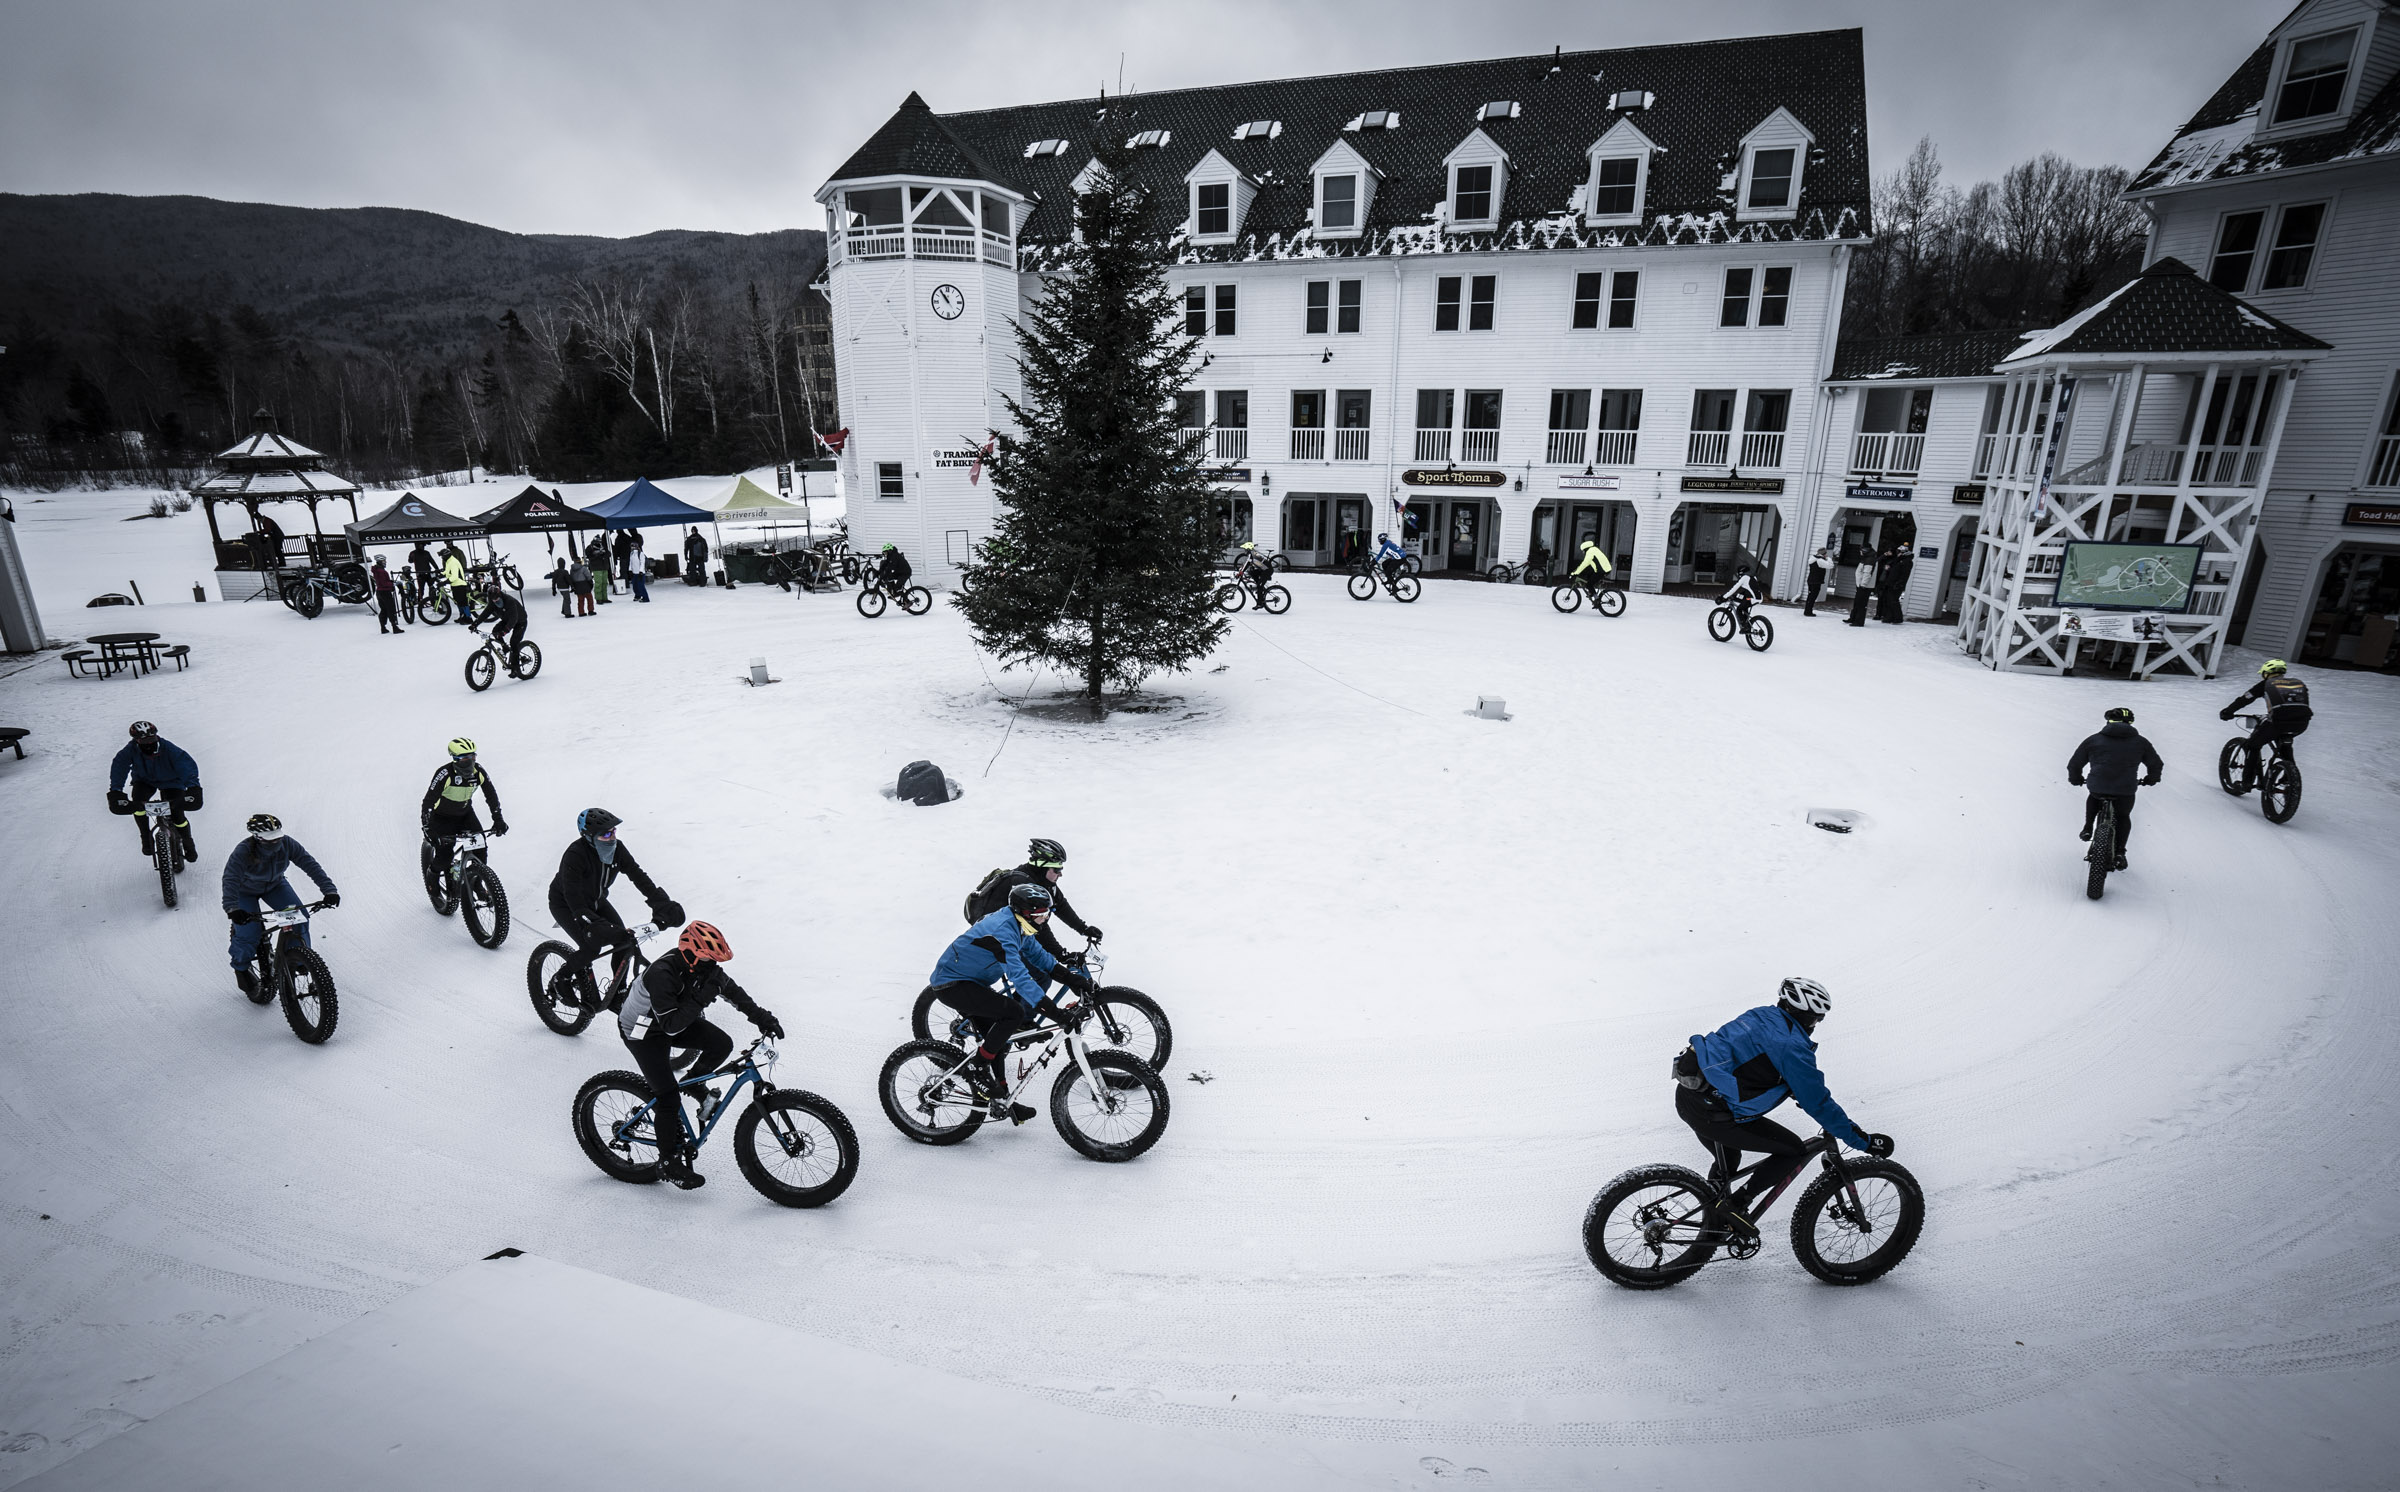 Fat Bikers warm up in Village Square at Waterville Valley